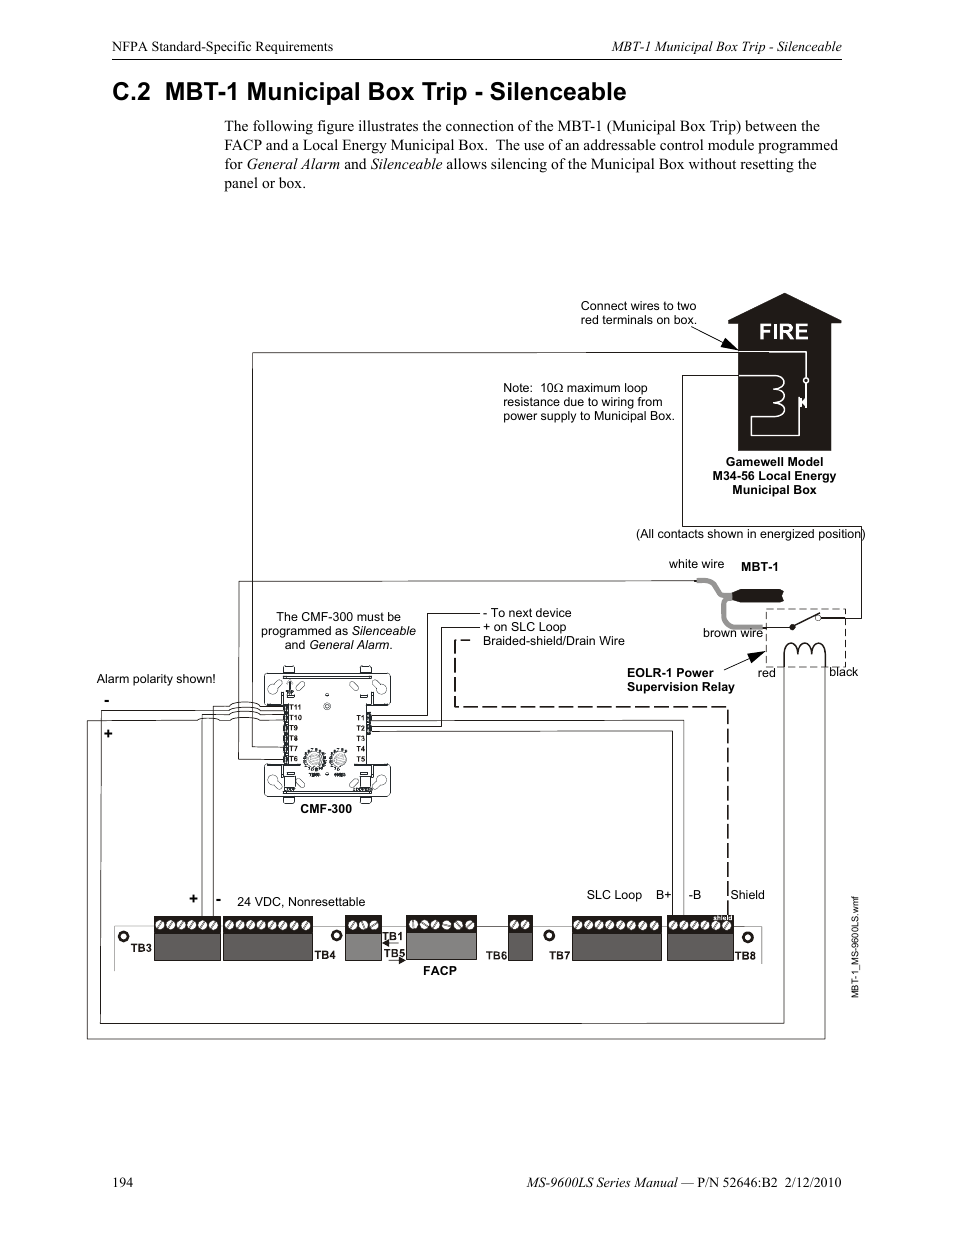 C2 Mbt 1 Municipal Box Trip Silenceable Gamewell Fire Alarm Wiring Diagram Lite Ms 9600lsc Addressable Control Panel User Manual Page 194 208